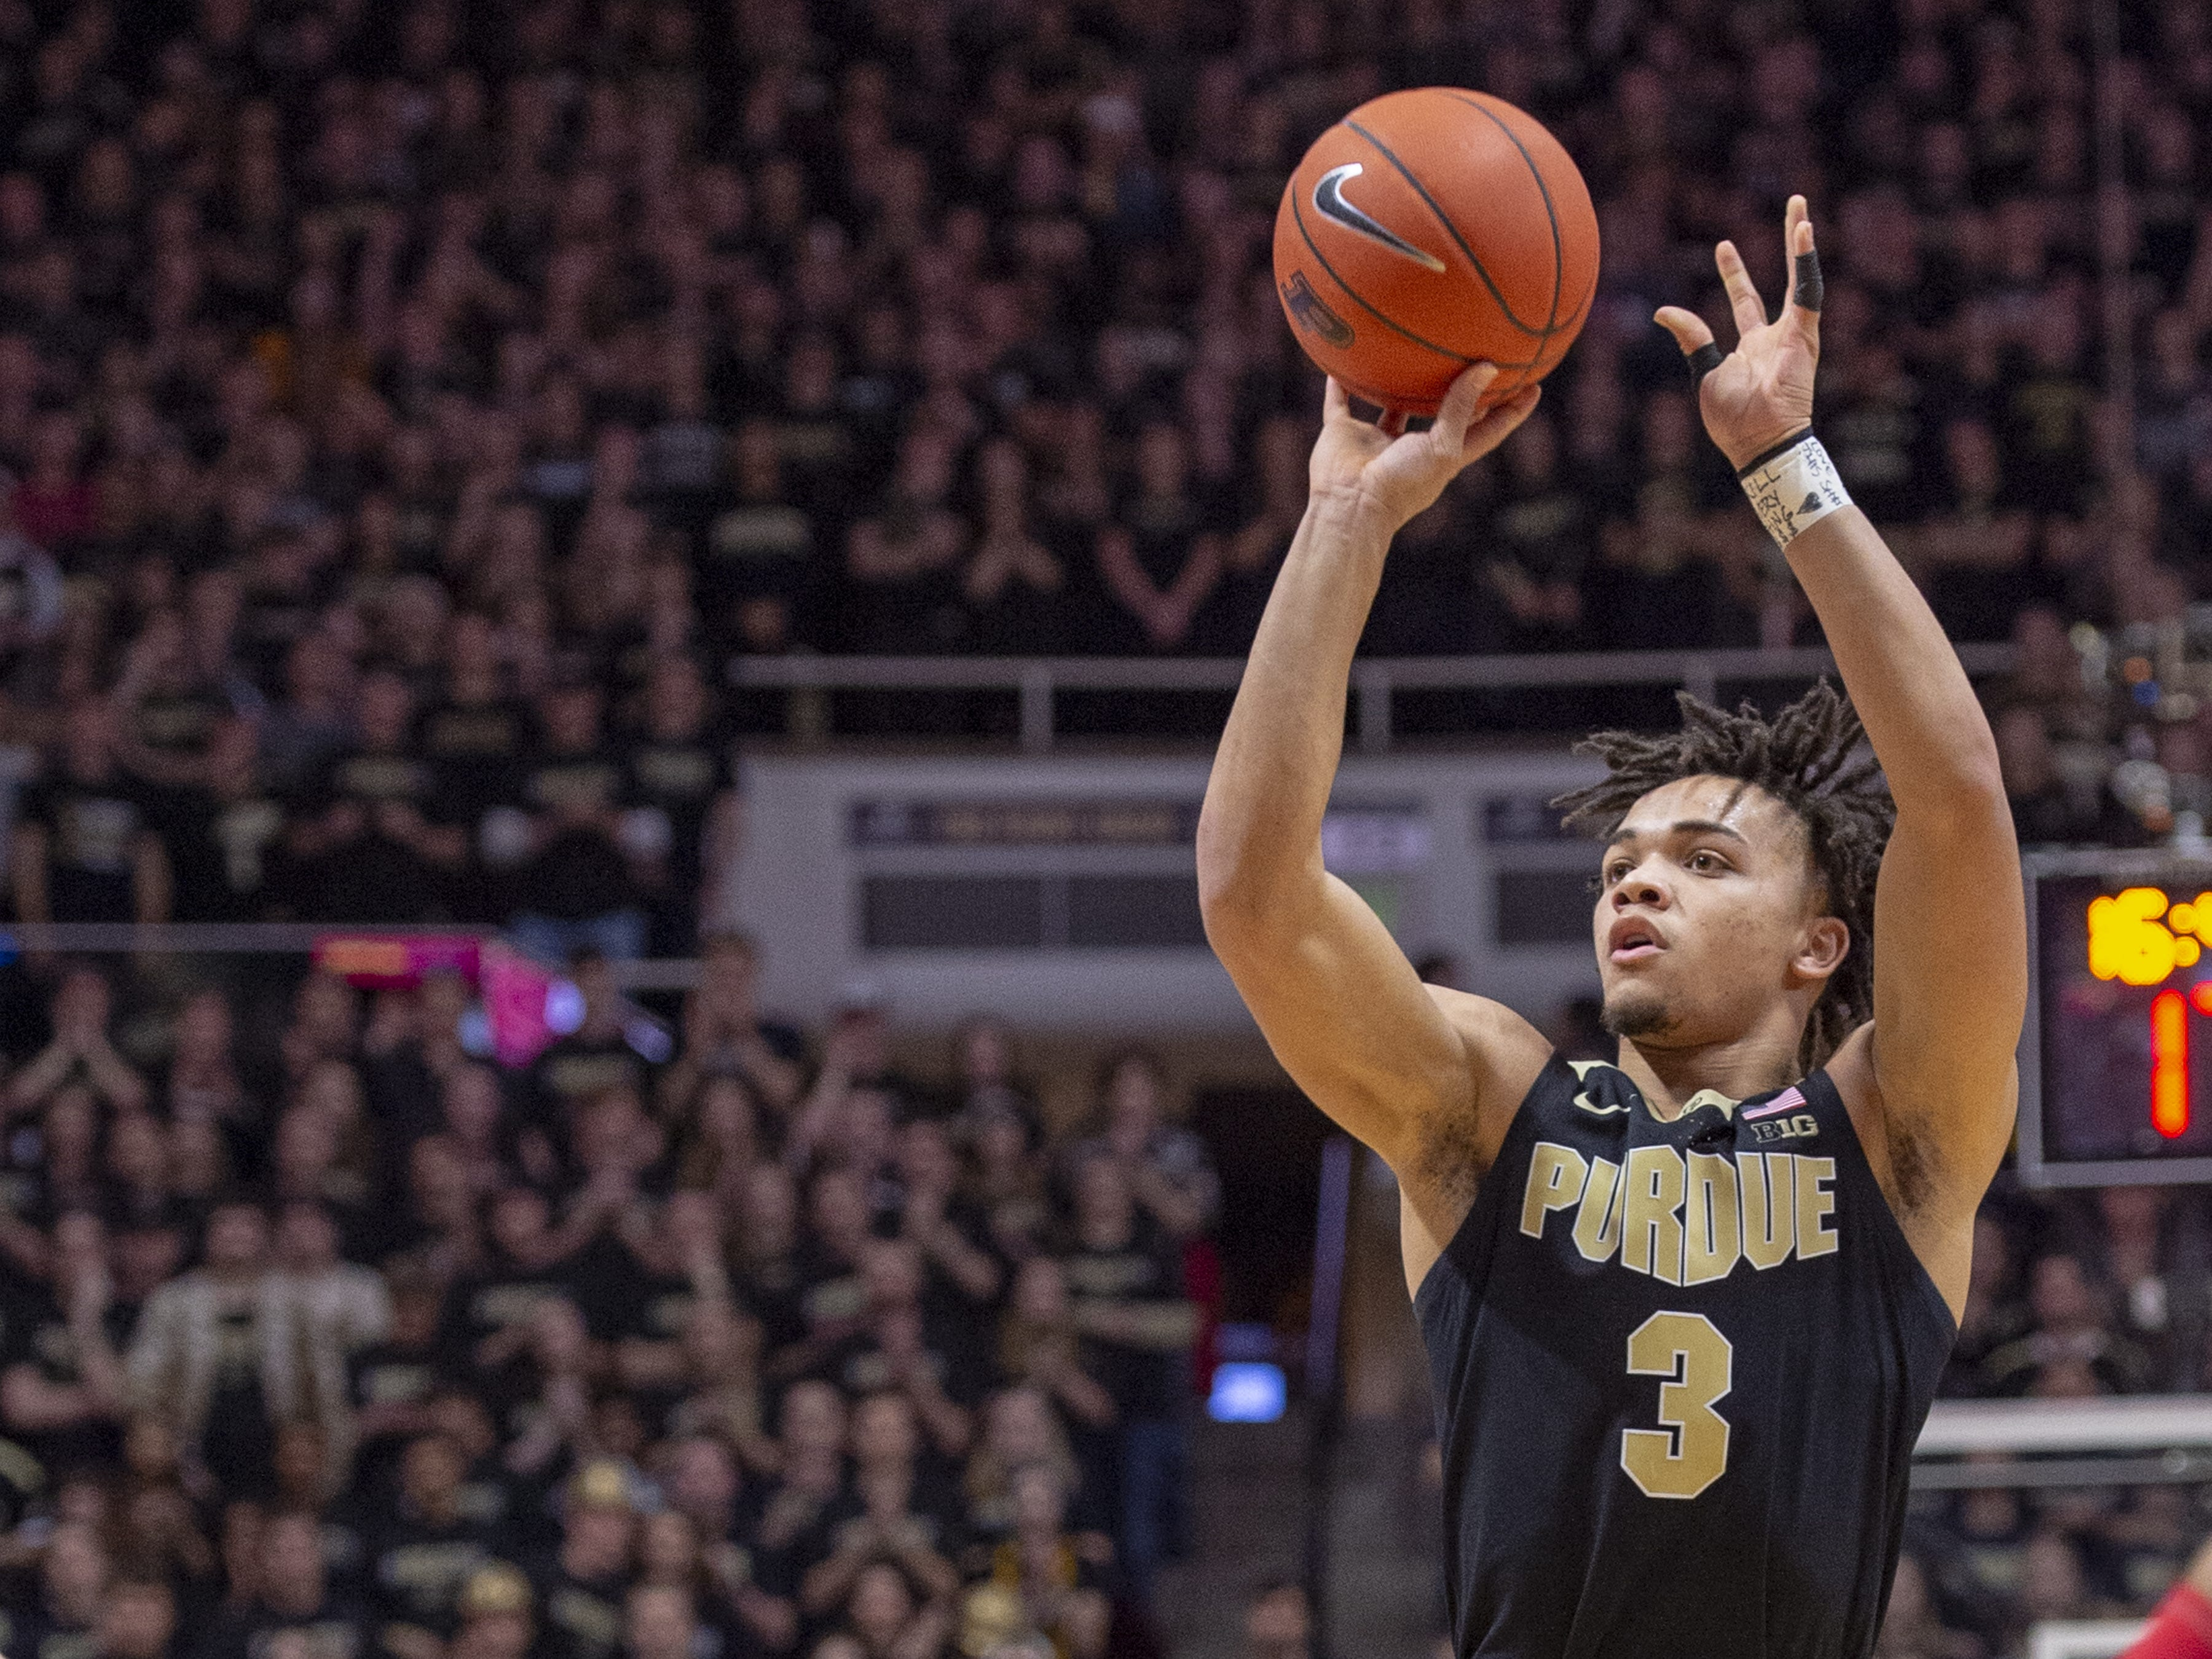 Purdue Boilermakers guard Carsen Edwards (3) puts up a shot during the second half against Indiana.